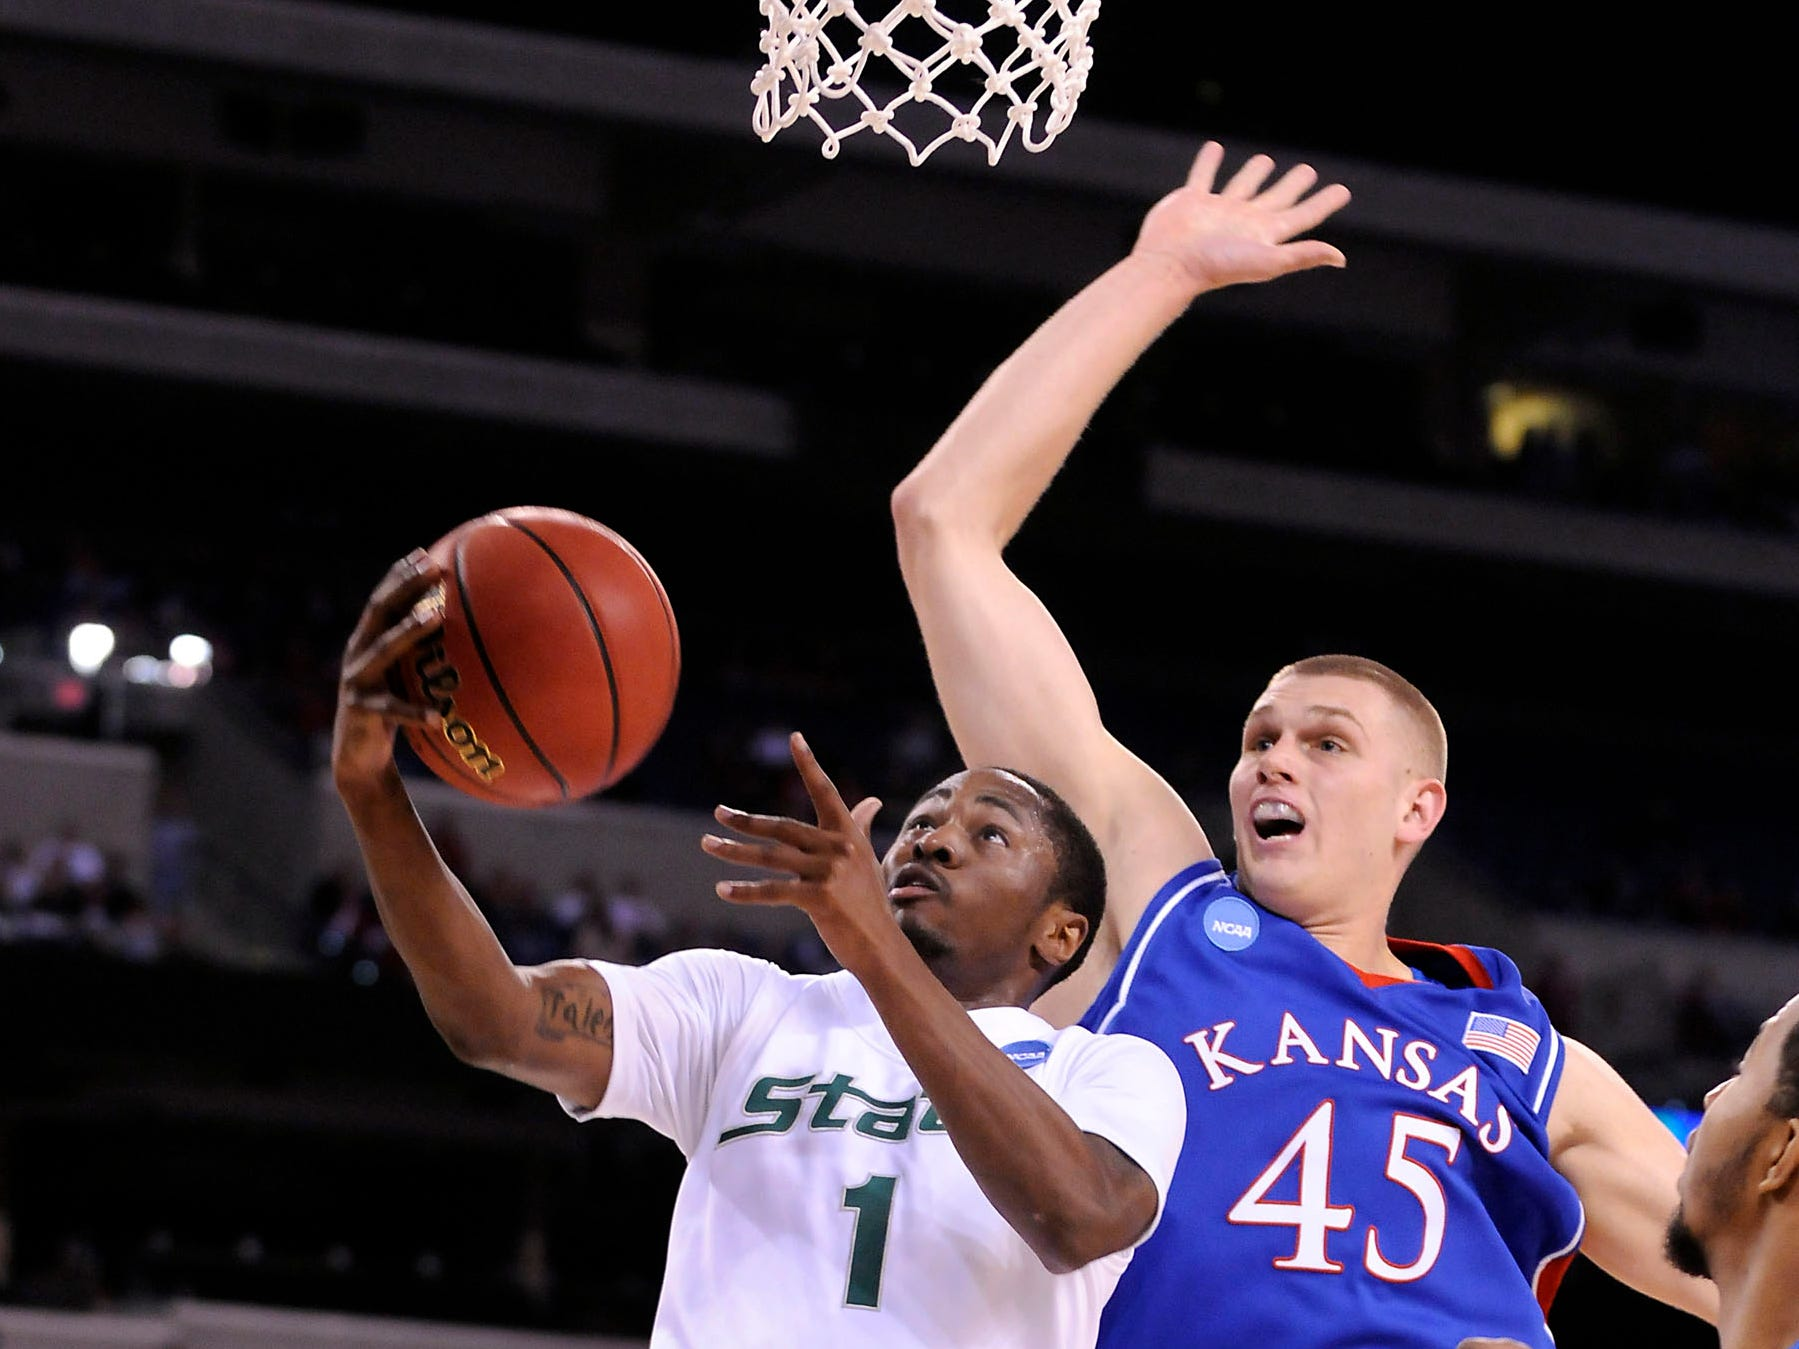 Michigan State's Kalin Lucas gets past Kansas's Cole Aldrich for a score in their  NCAA tournament Friday, March 27 in Indianapolis.